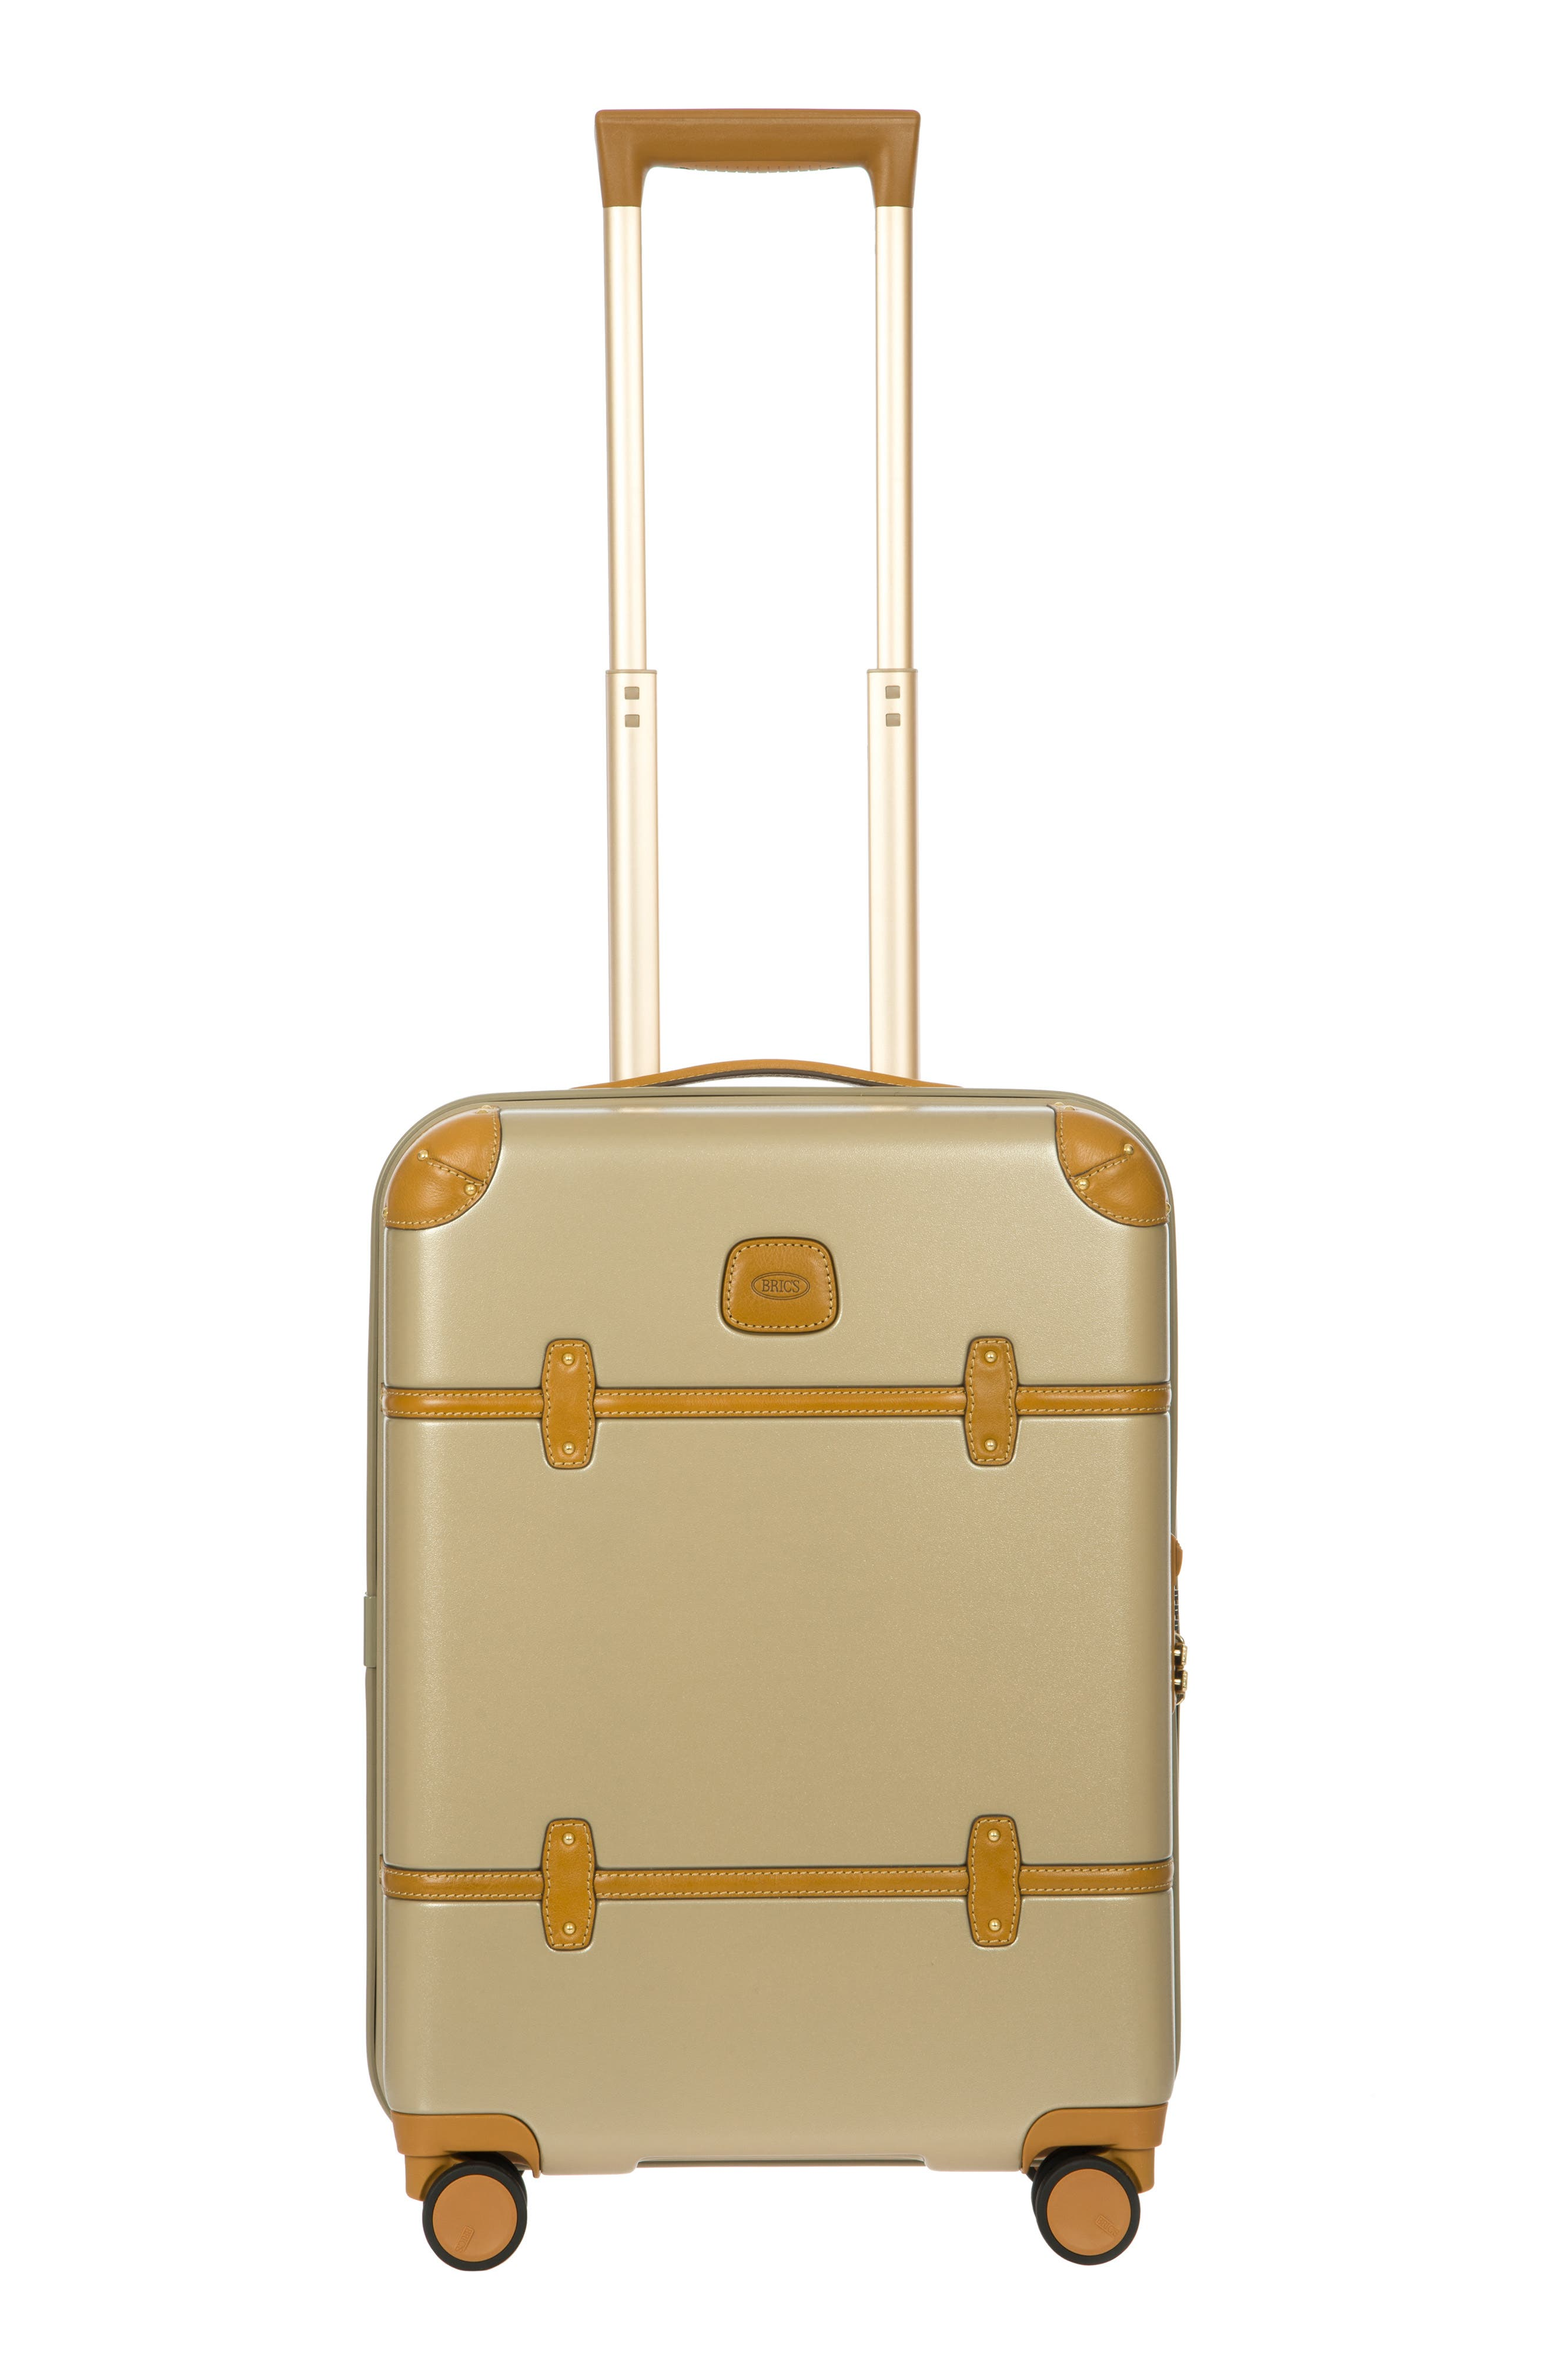 Bellagio 2.0 21-Inch Rolling Carry-On - Metallic in Gold